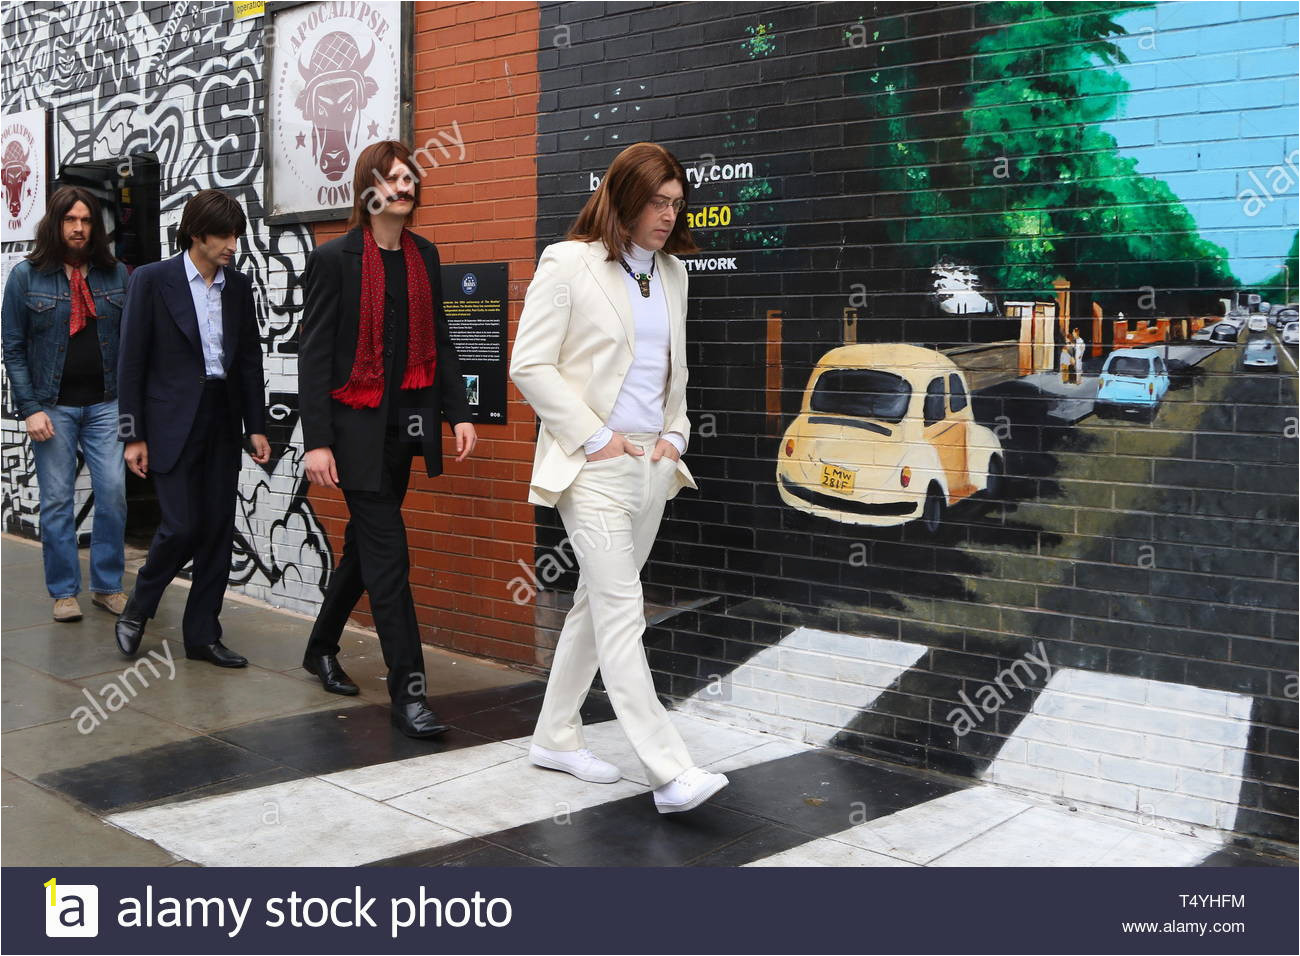 liverpool uk cast of let it be at abbey road photoshoot credit ian fairbrotheralamy stock photos T4YHFM